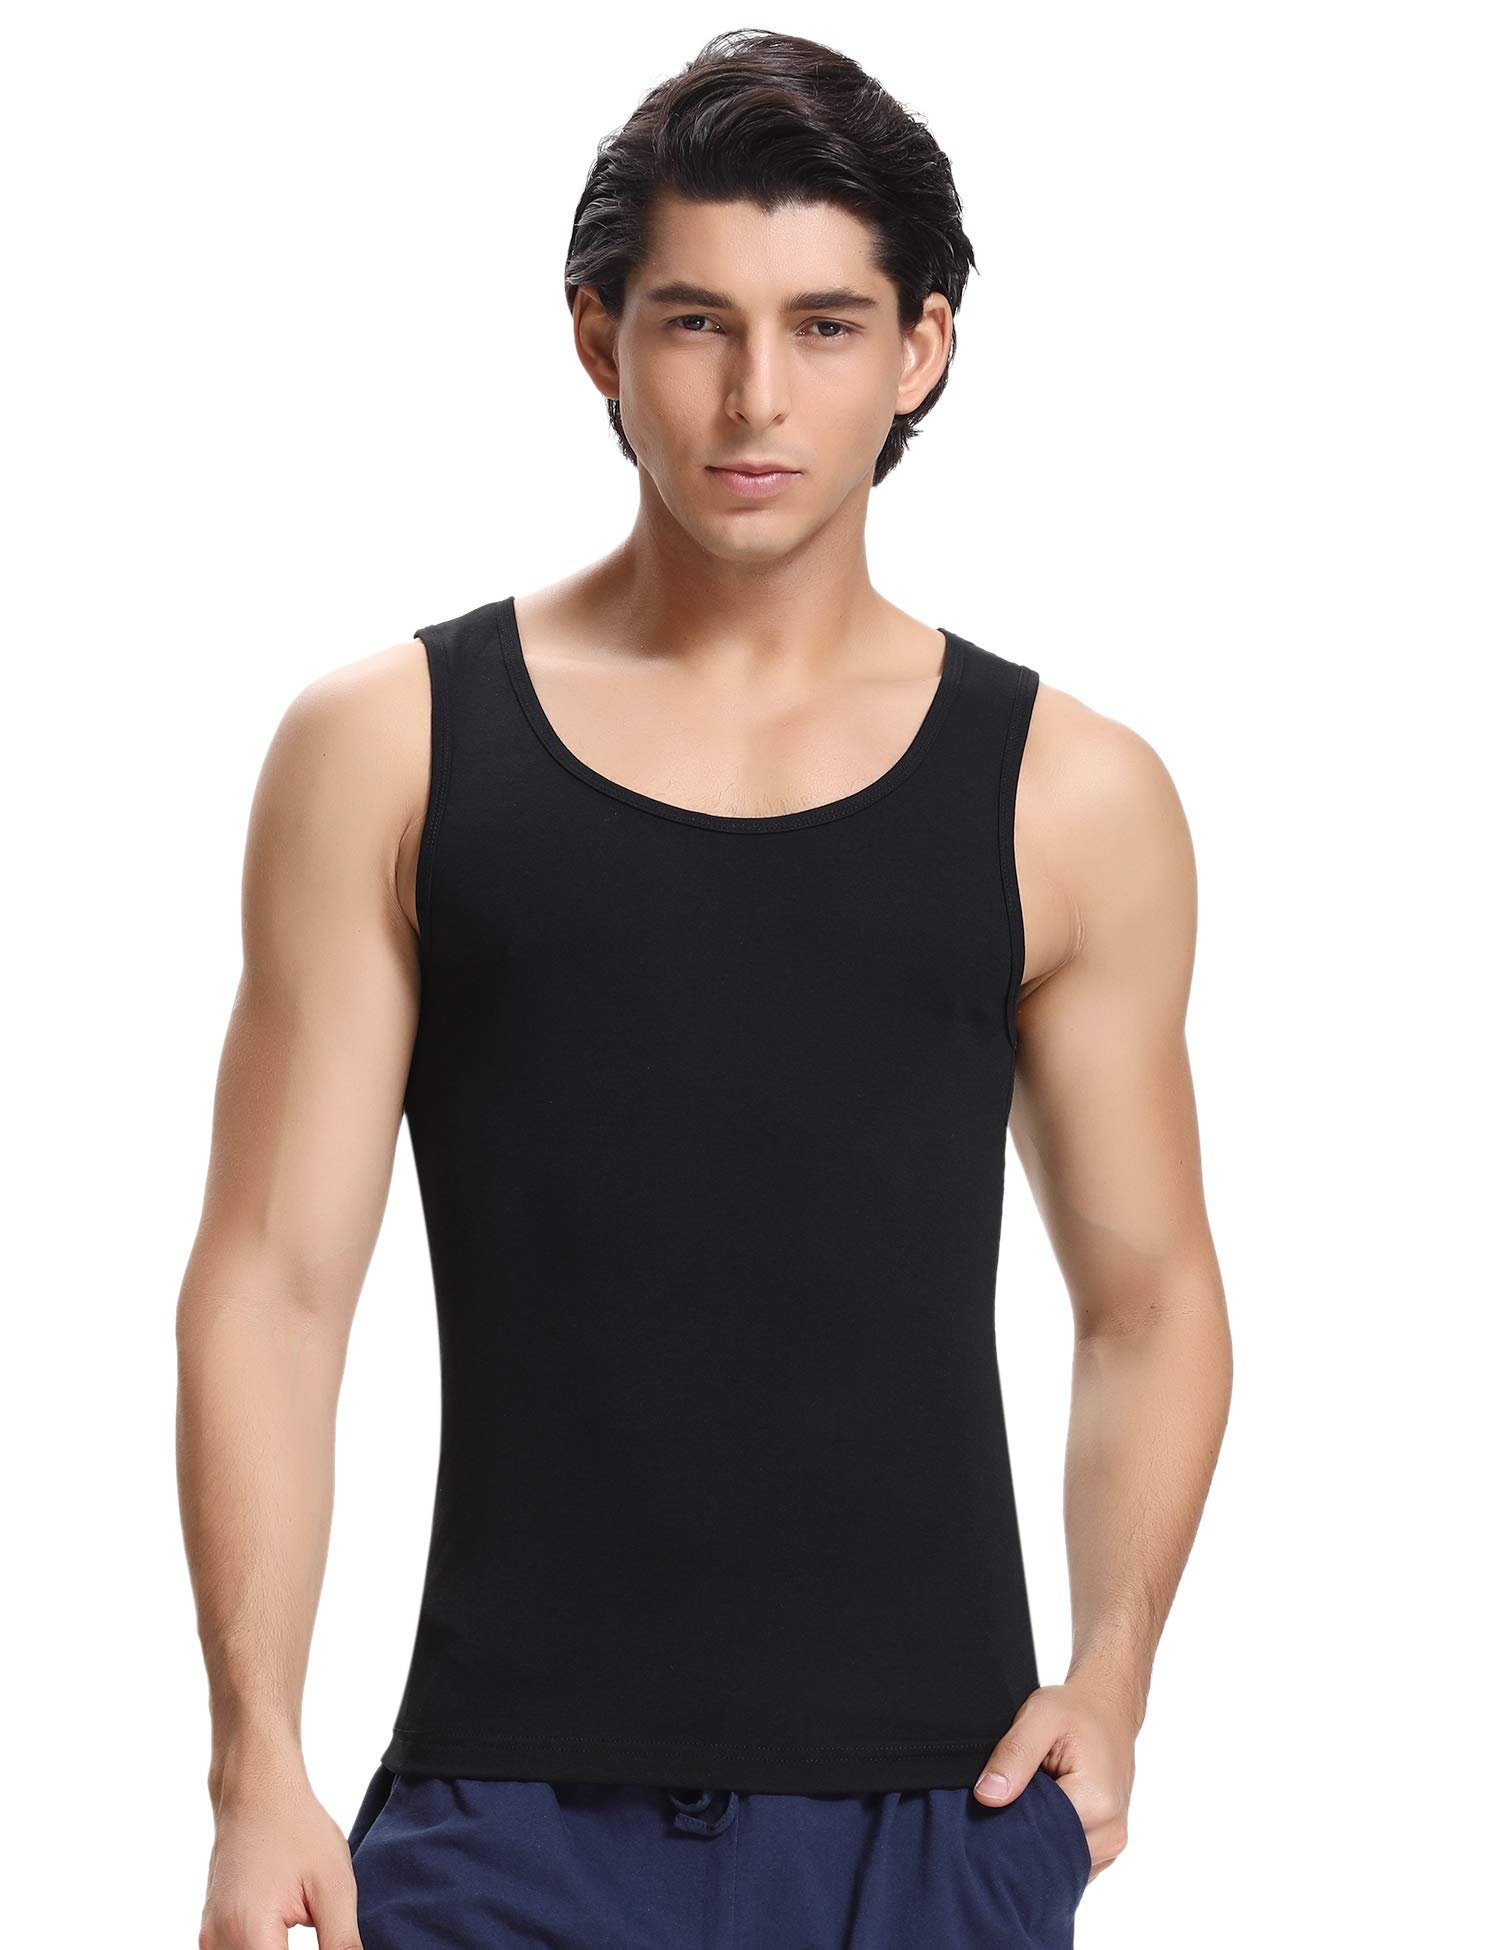 Hawiton Men's Base Muscle Fitness Tank Tops Dry Fit Workout Shirts Tees for Gym Sport